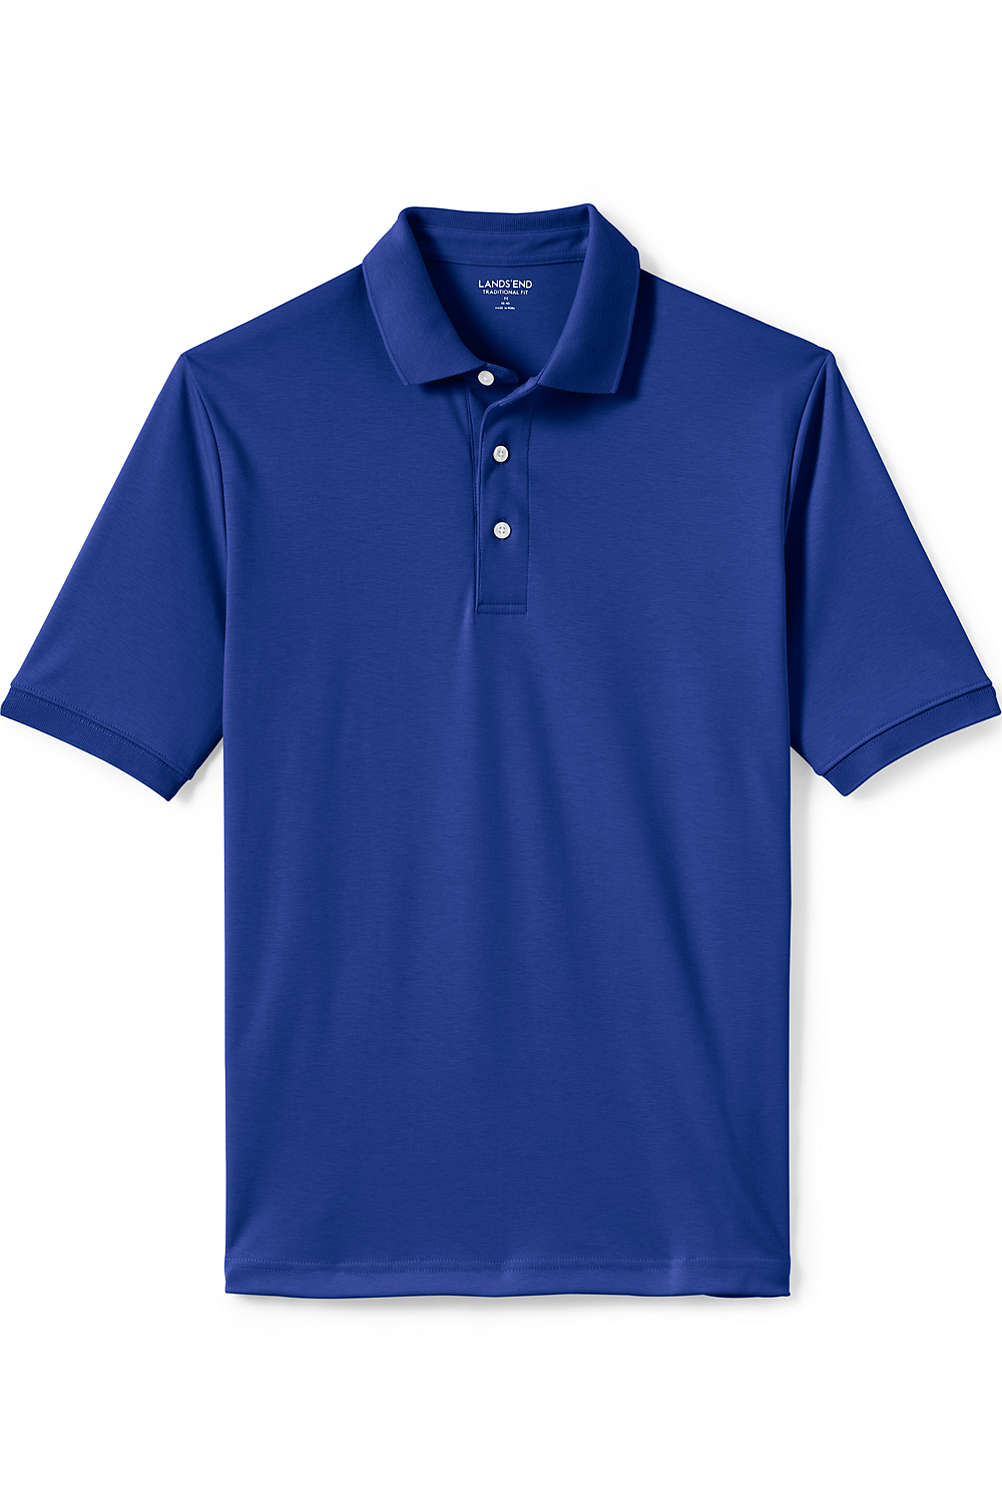 63473c19 Men's Big & Tall Supima Polo Shirt from Lands' End